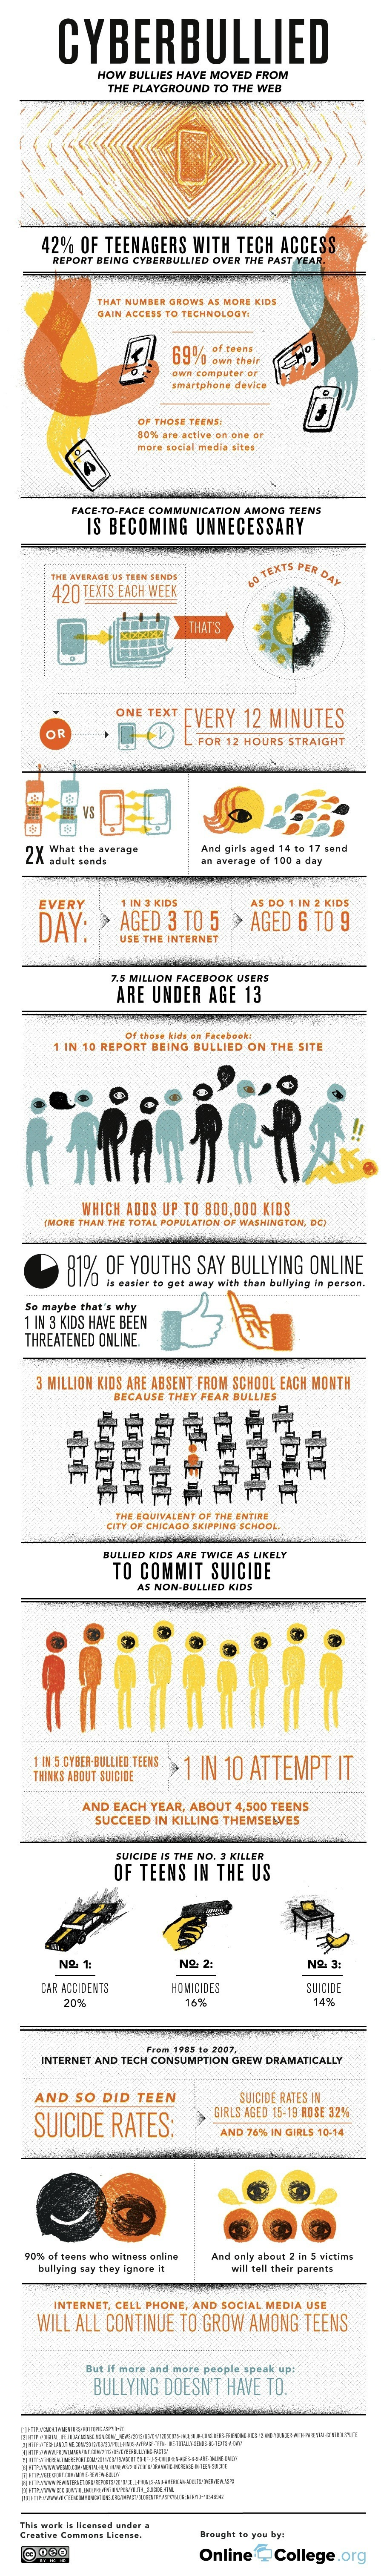 Cyberbullying Trends